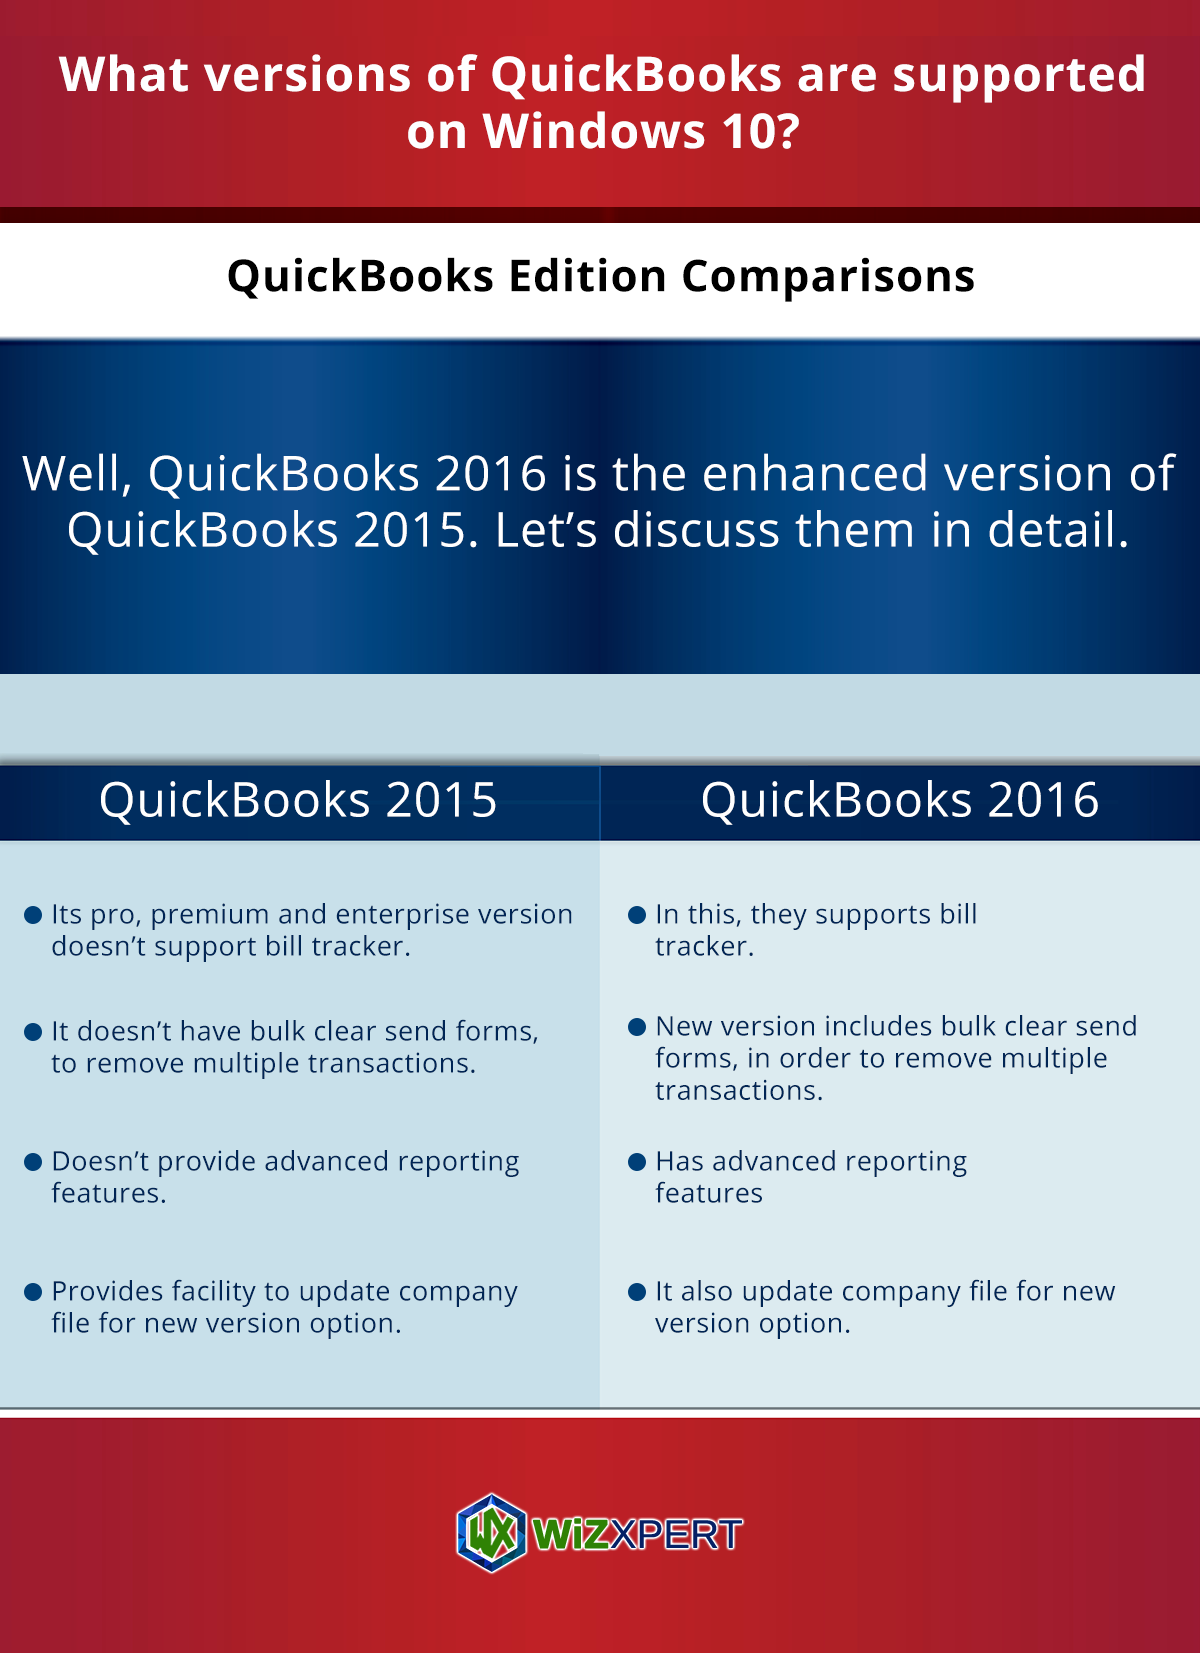 quickbooks pro 2015 and windows 10